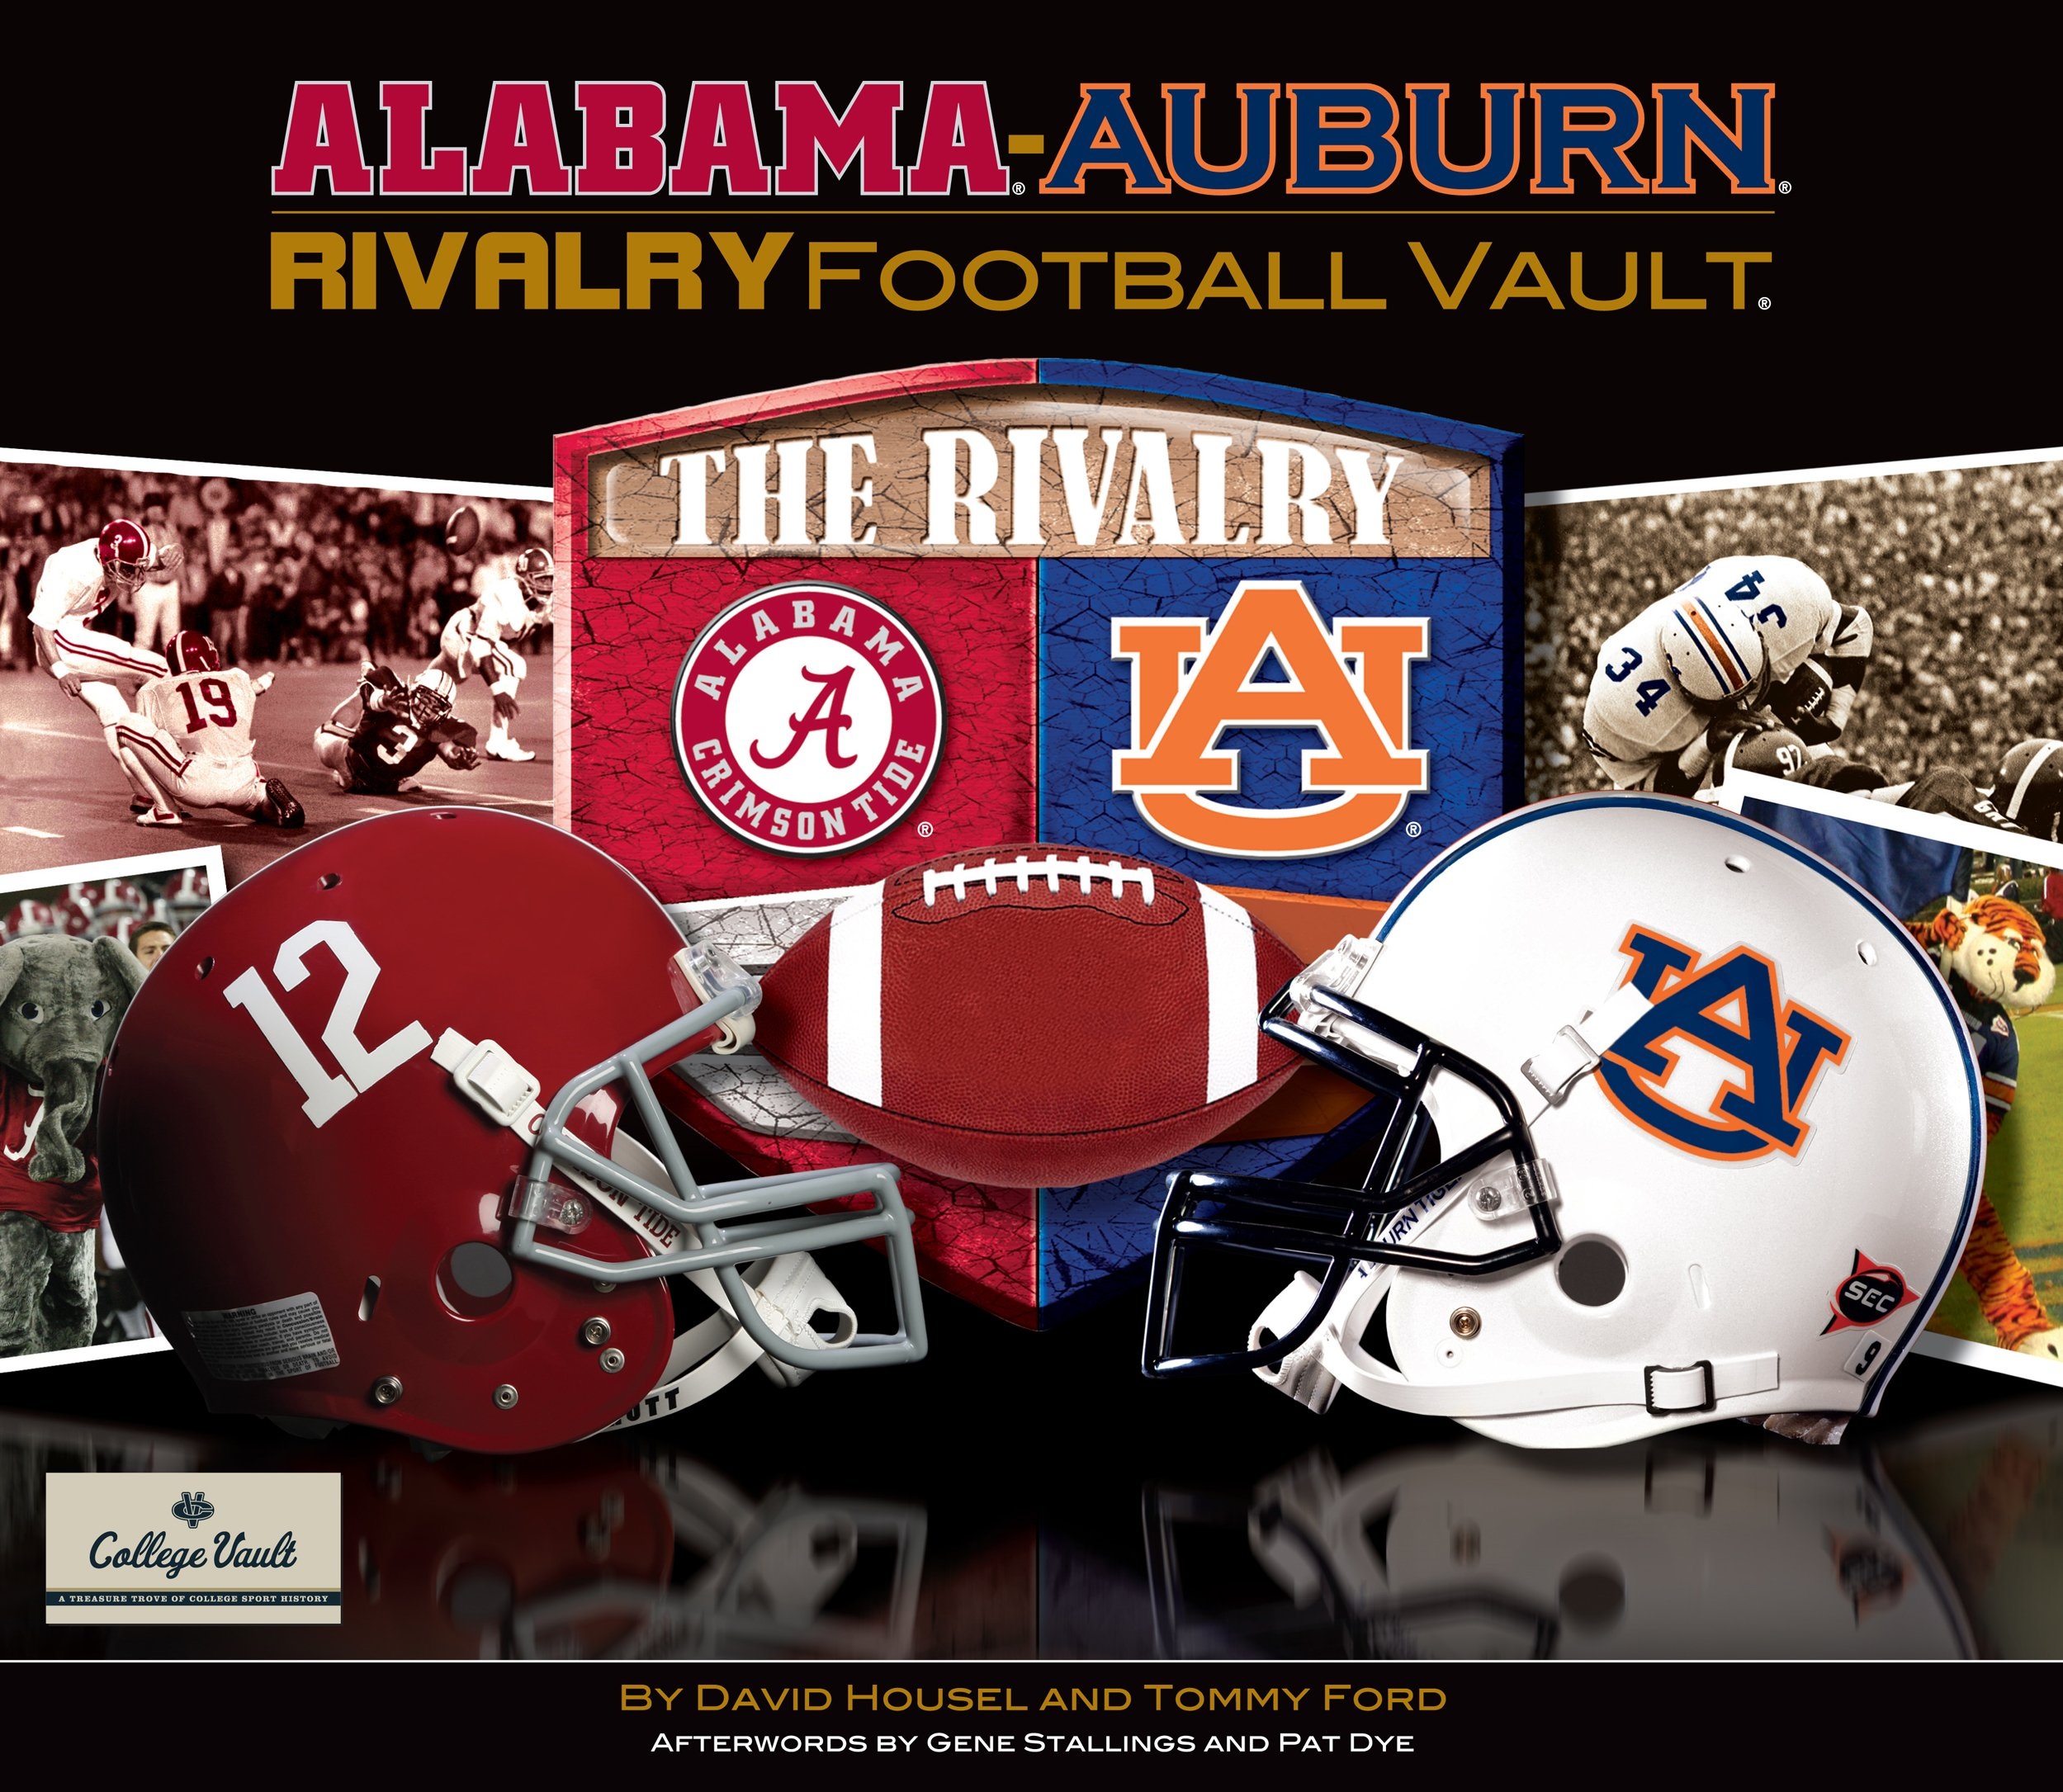 Alabama Auburn Rivalry Vault College Vault David Housel Tommy